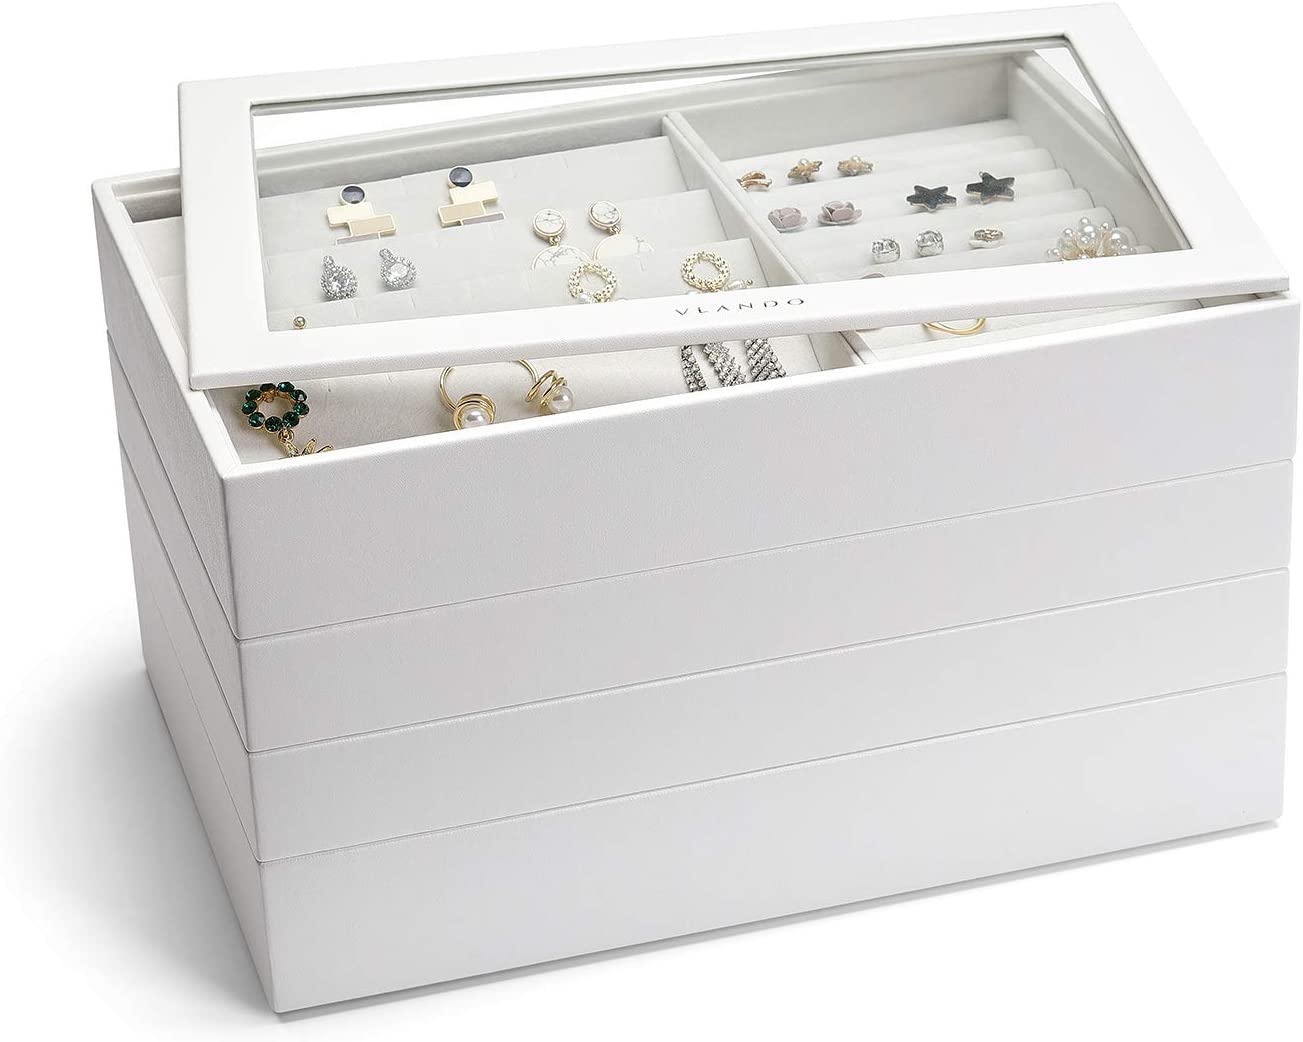 Vlando Jewelry Tray - Faux Leather Glass-top Jewelry Storage Organizer - Earring Necklace Bracelet Ring Display Desktop Drawer Chest, 4-Layer w/Clear Lid, White